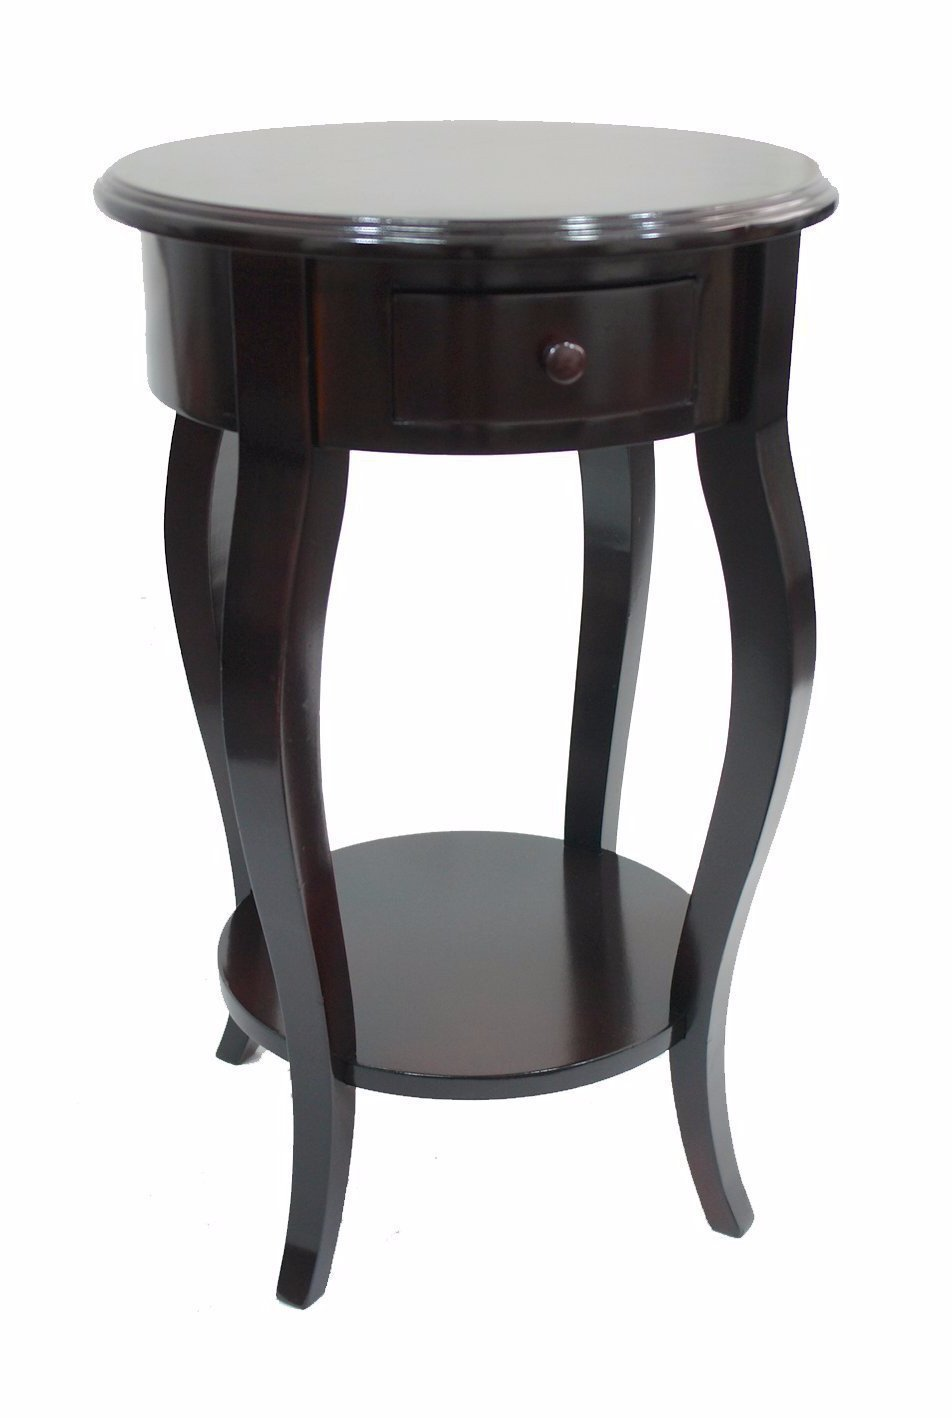 accent tables urbanest keffl large round table side dark brown hexagon metal garden diy base nice coffee wine chiller currey and company cement chairs ashley trunk amart outdoor